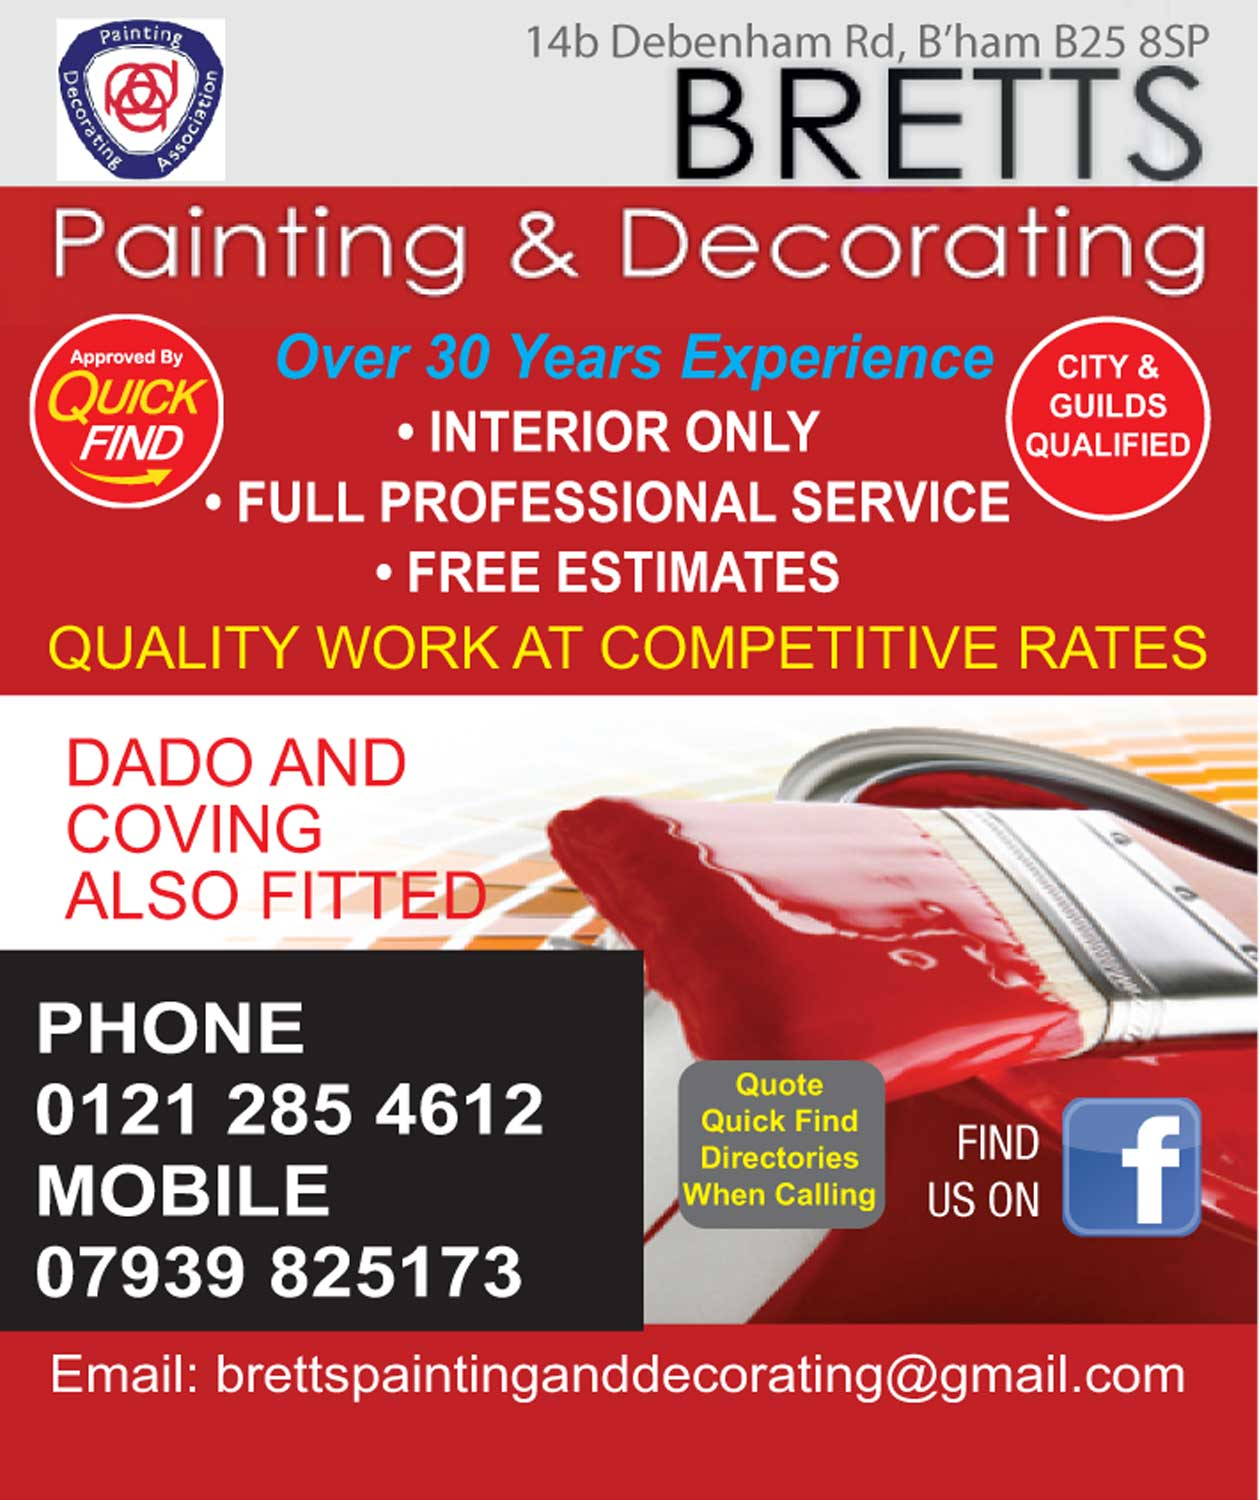 Bretts Painting and Decorating